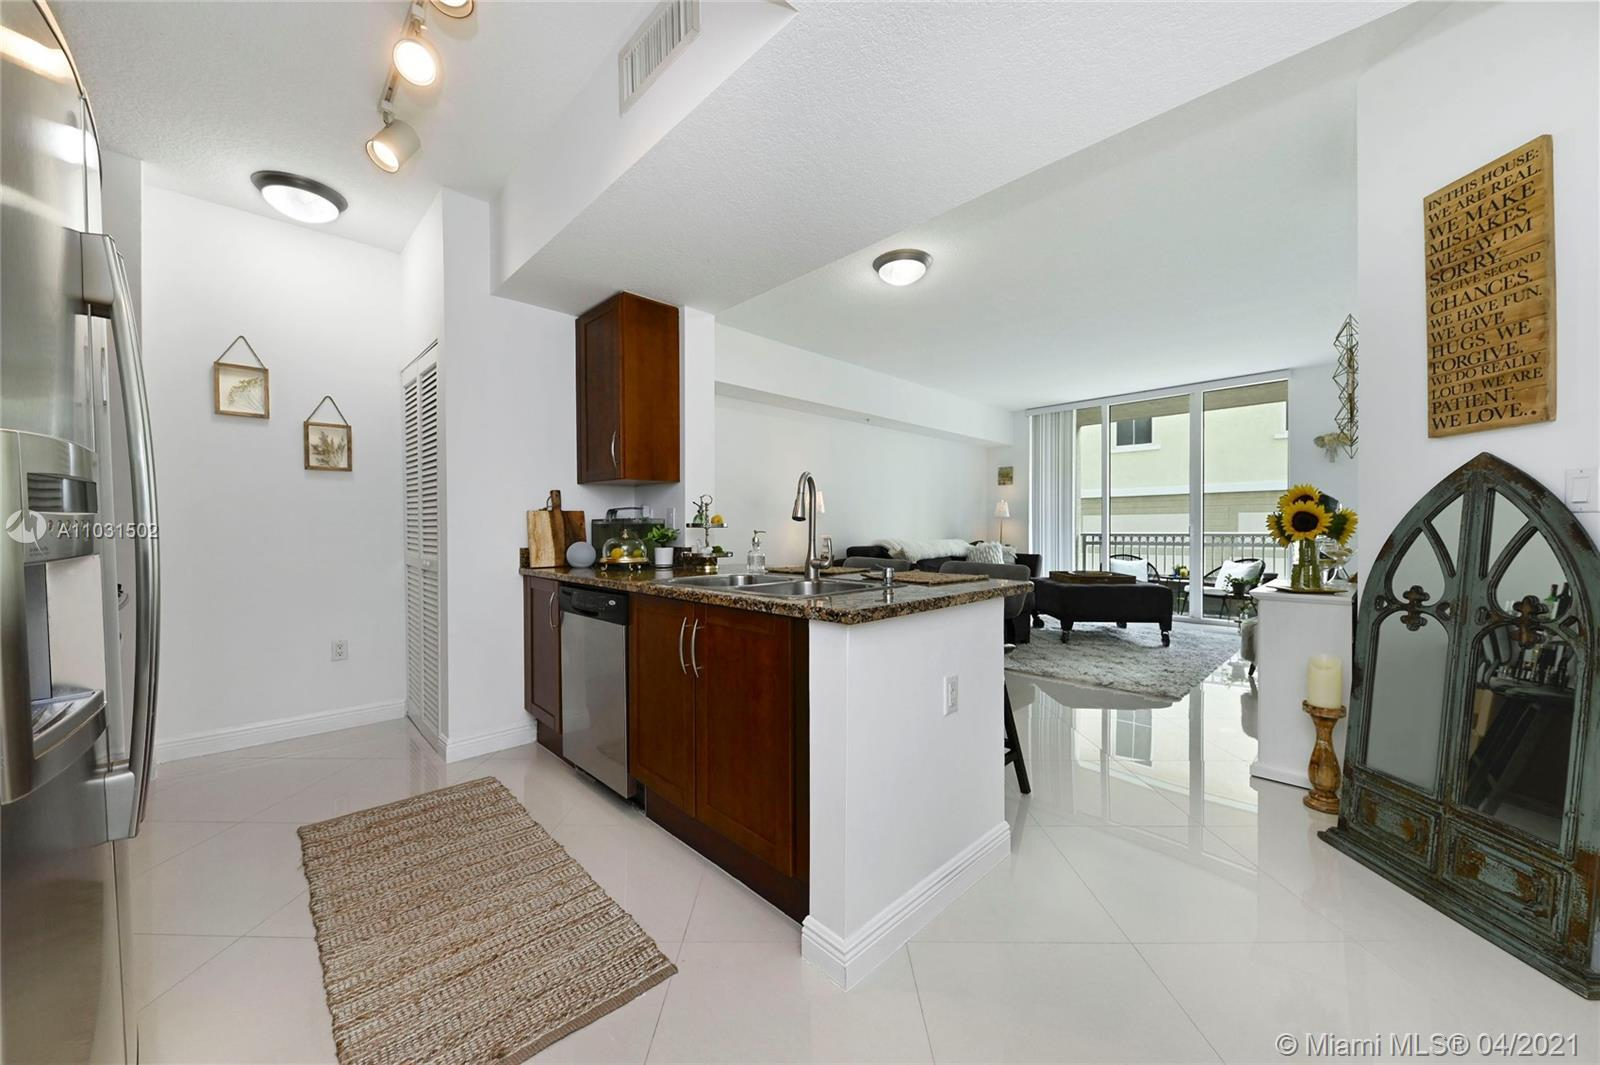 Gorgeous and bright 835sf 1bd/1.5 ba condo in a 5-star resort-style building! Brand new porcelain fl